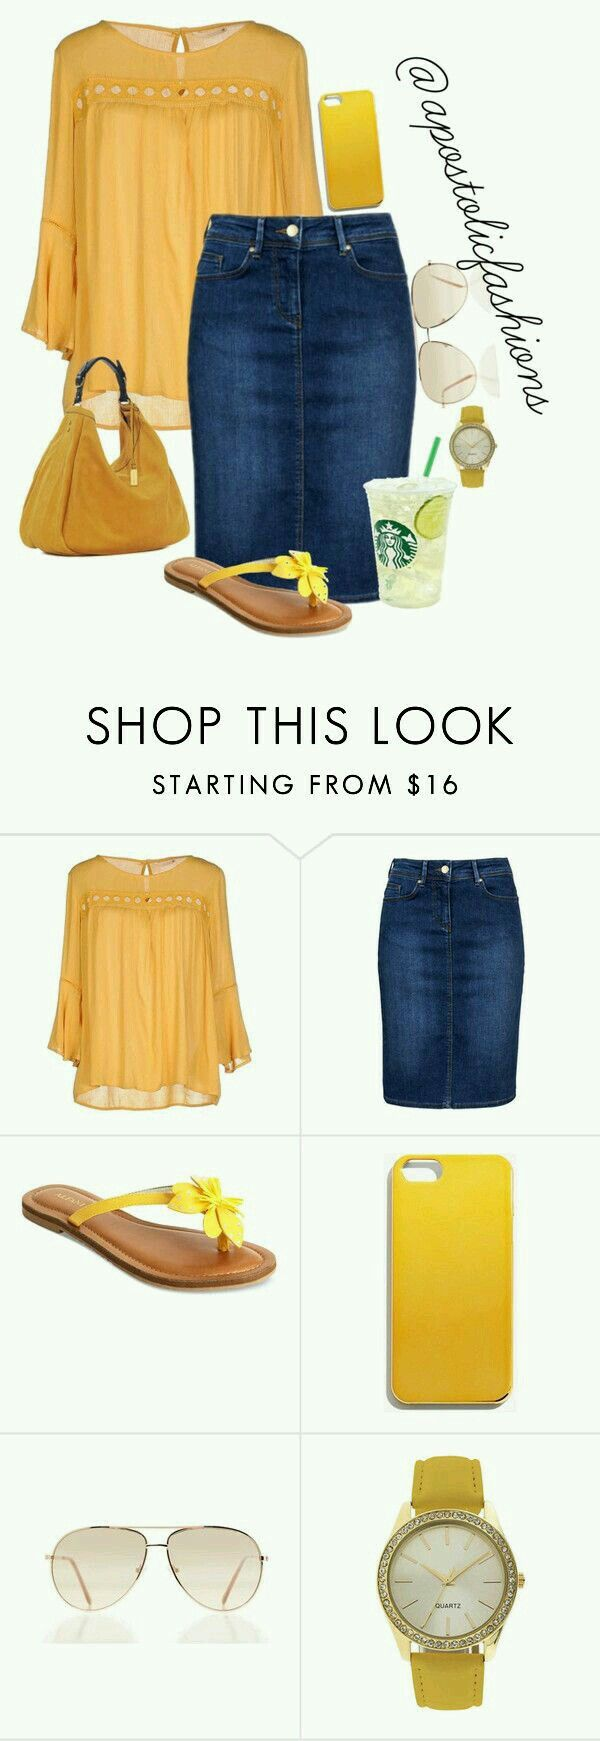 I don't do yellow well but I love this golden yellow top! I have the perfect jean skirt for it!